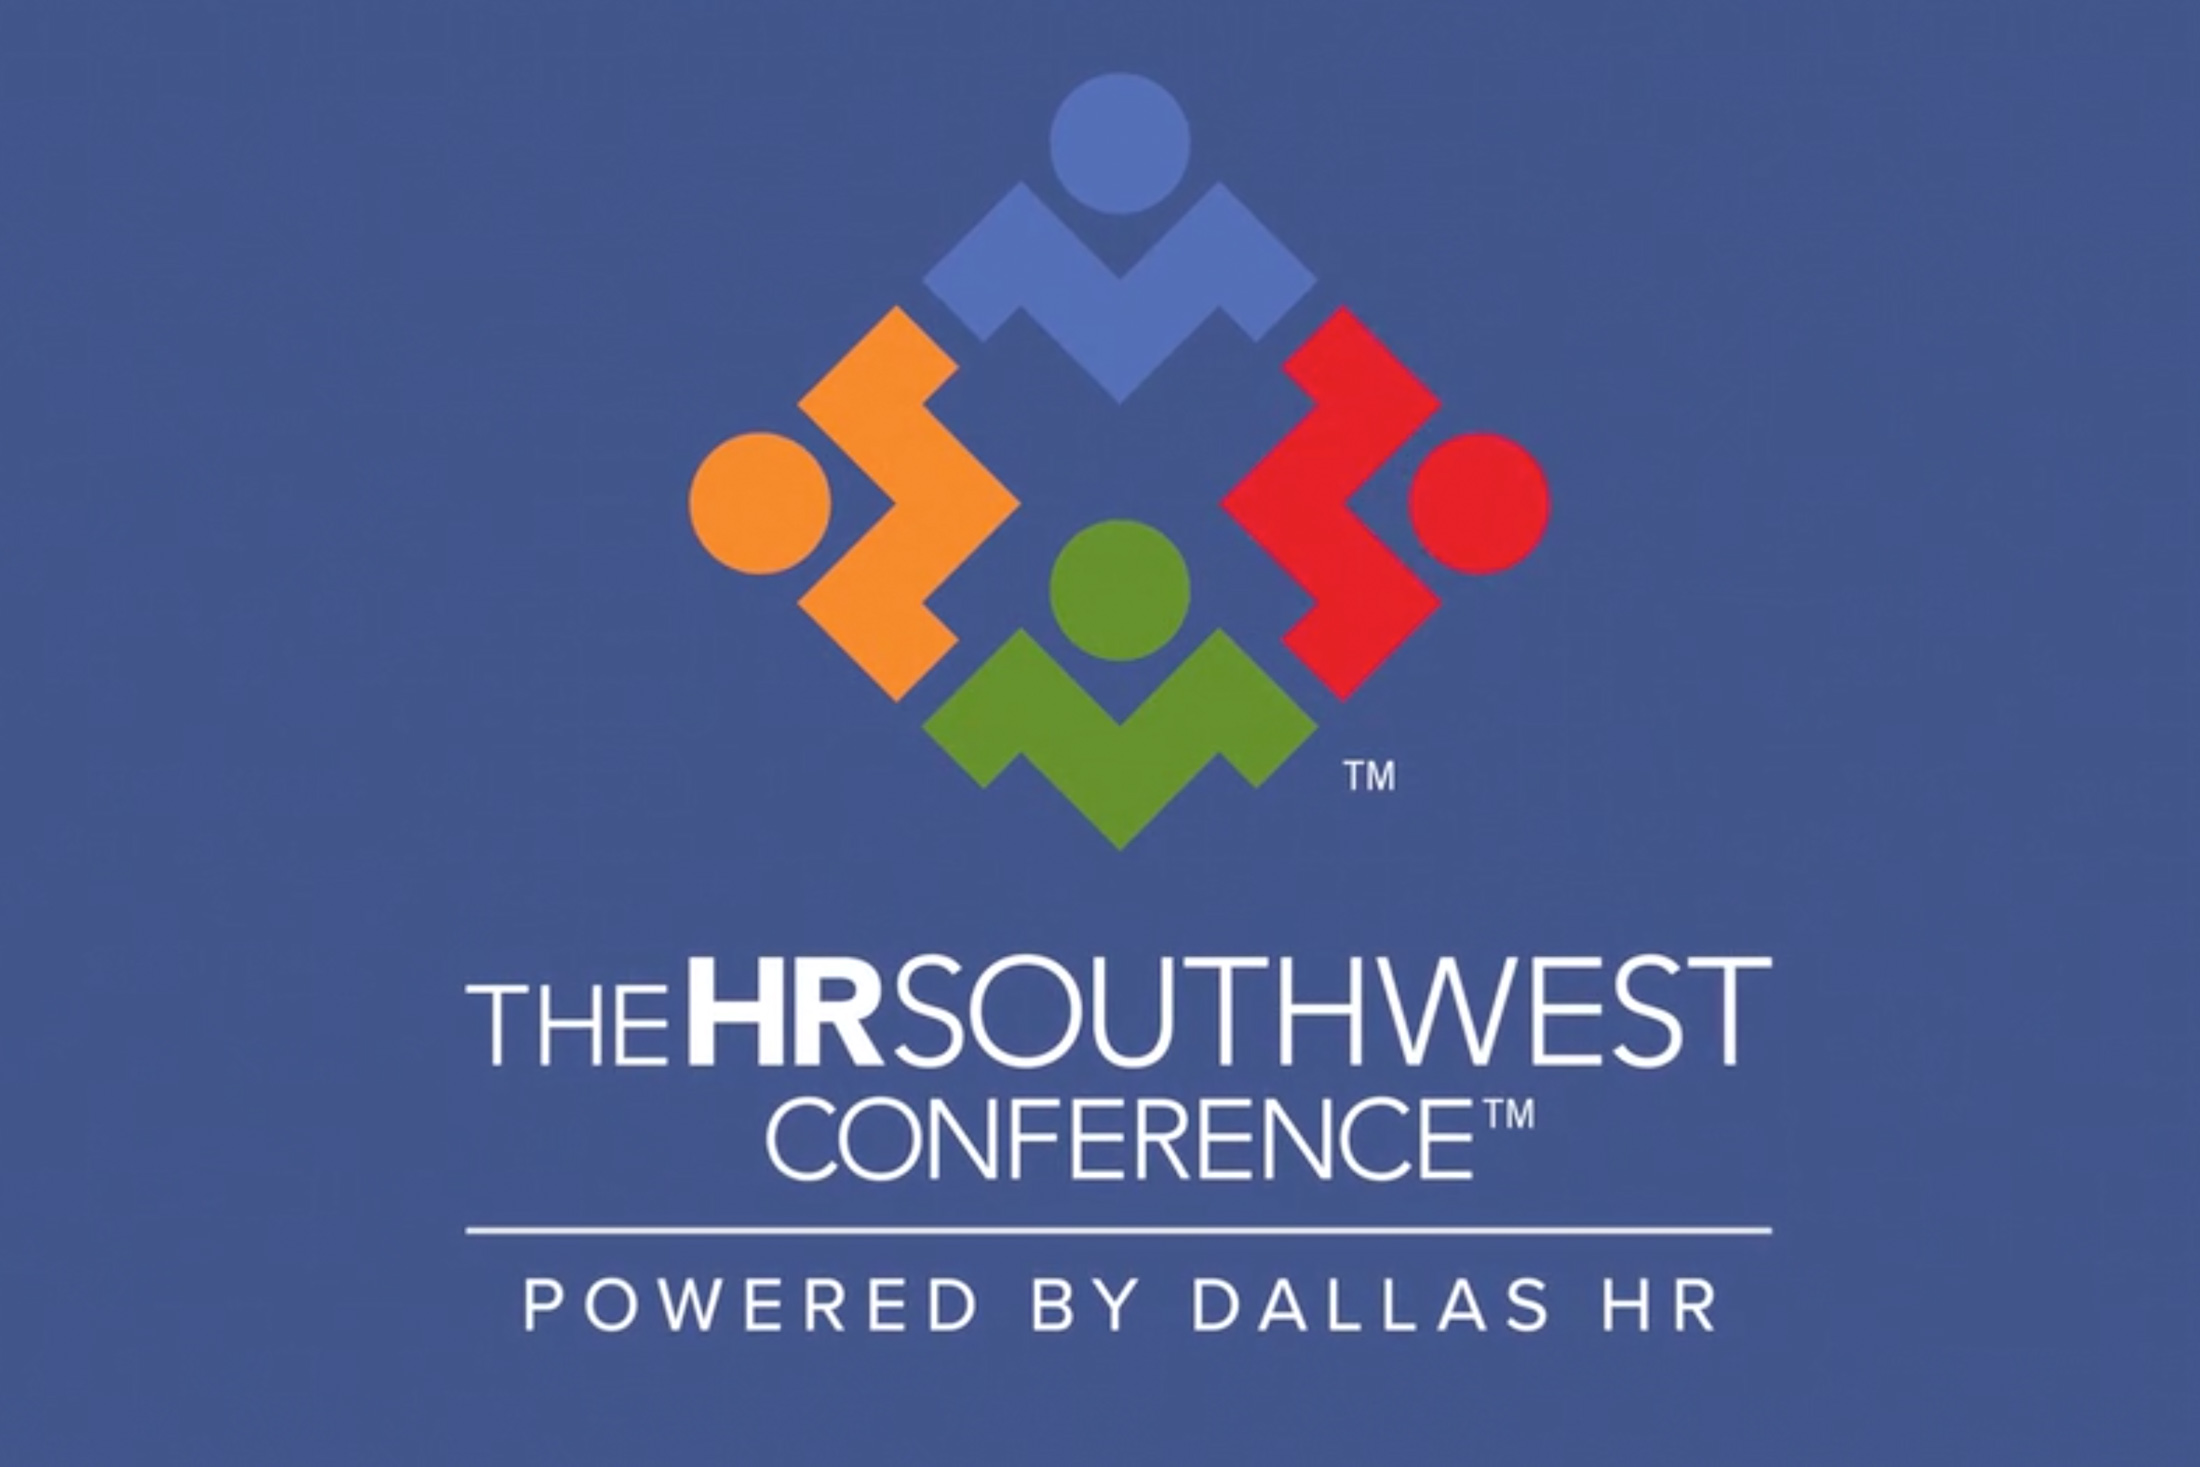 HR SouthWest